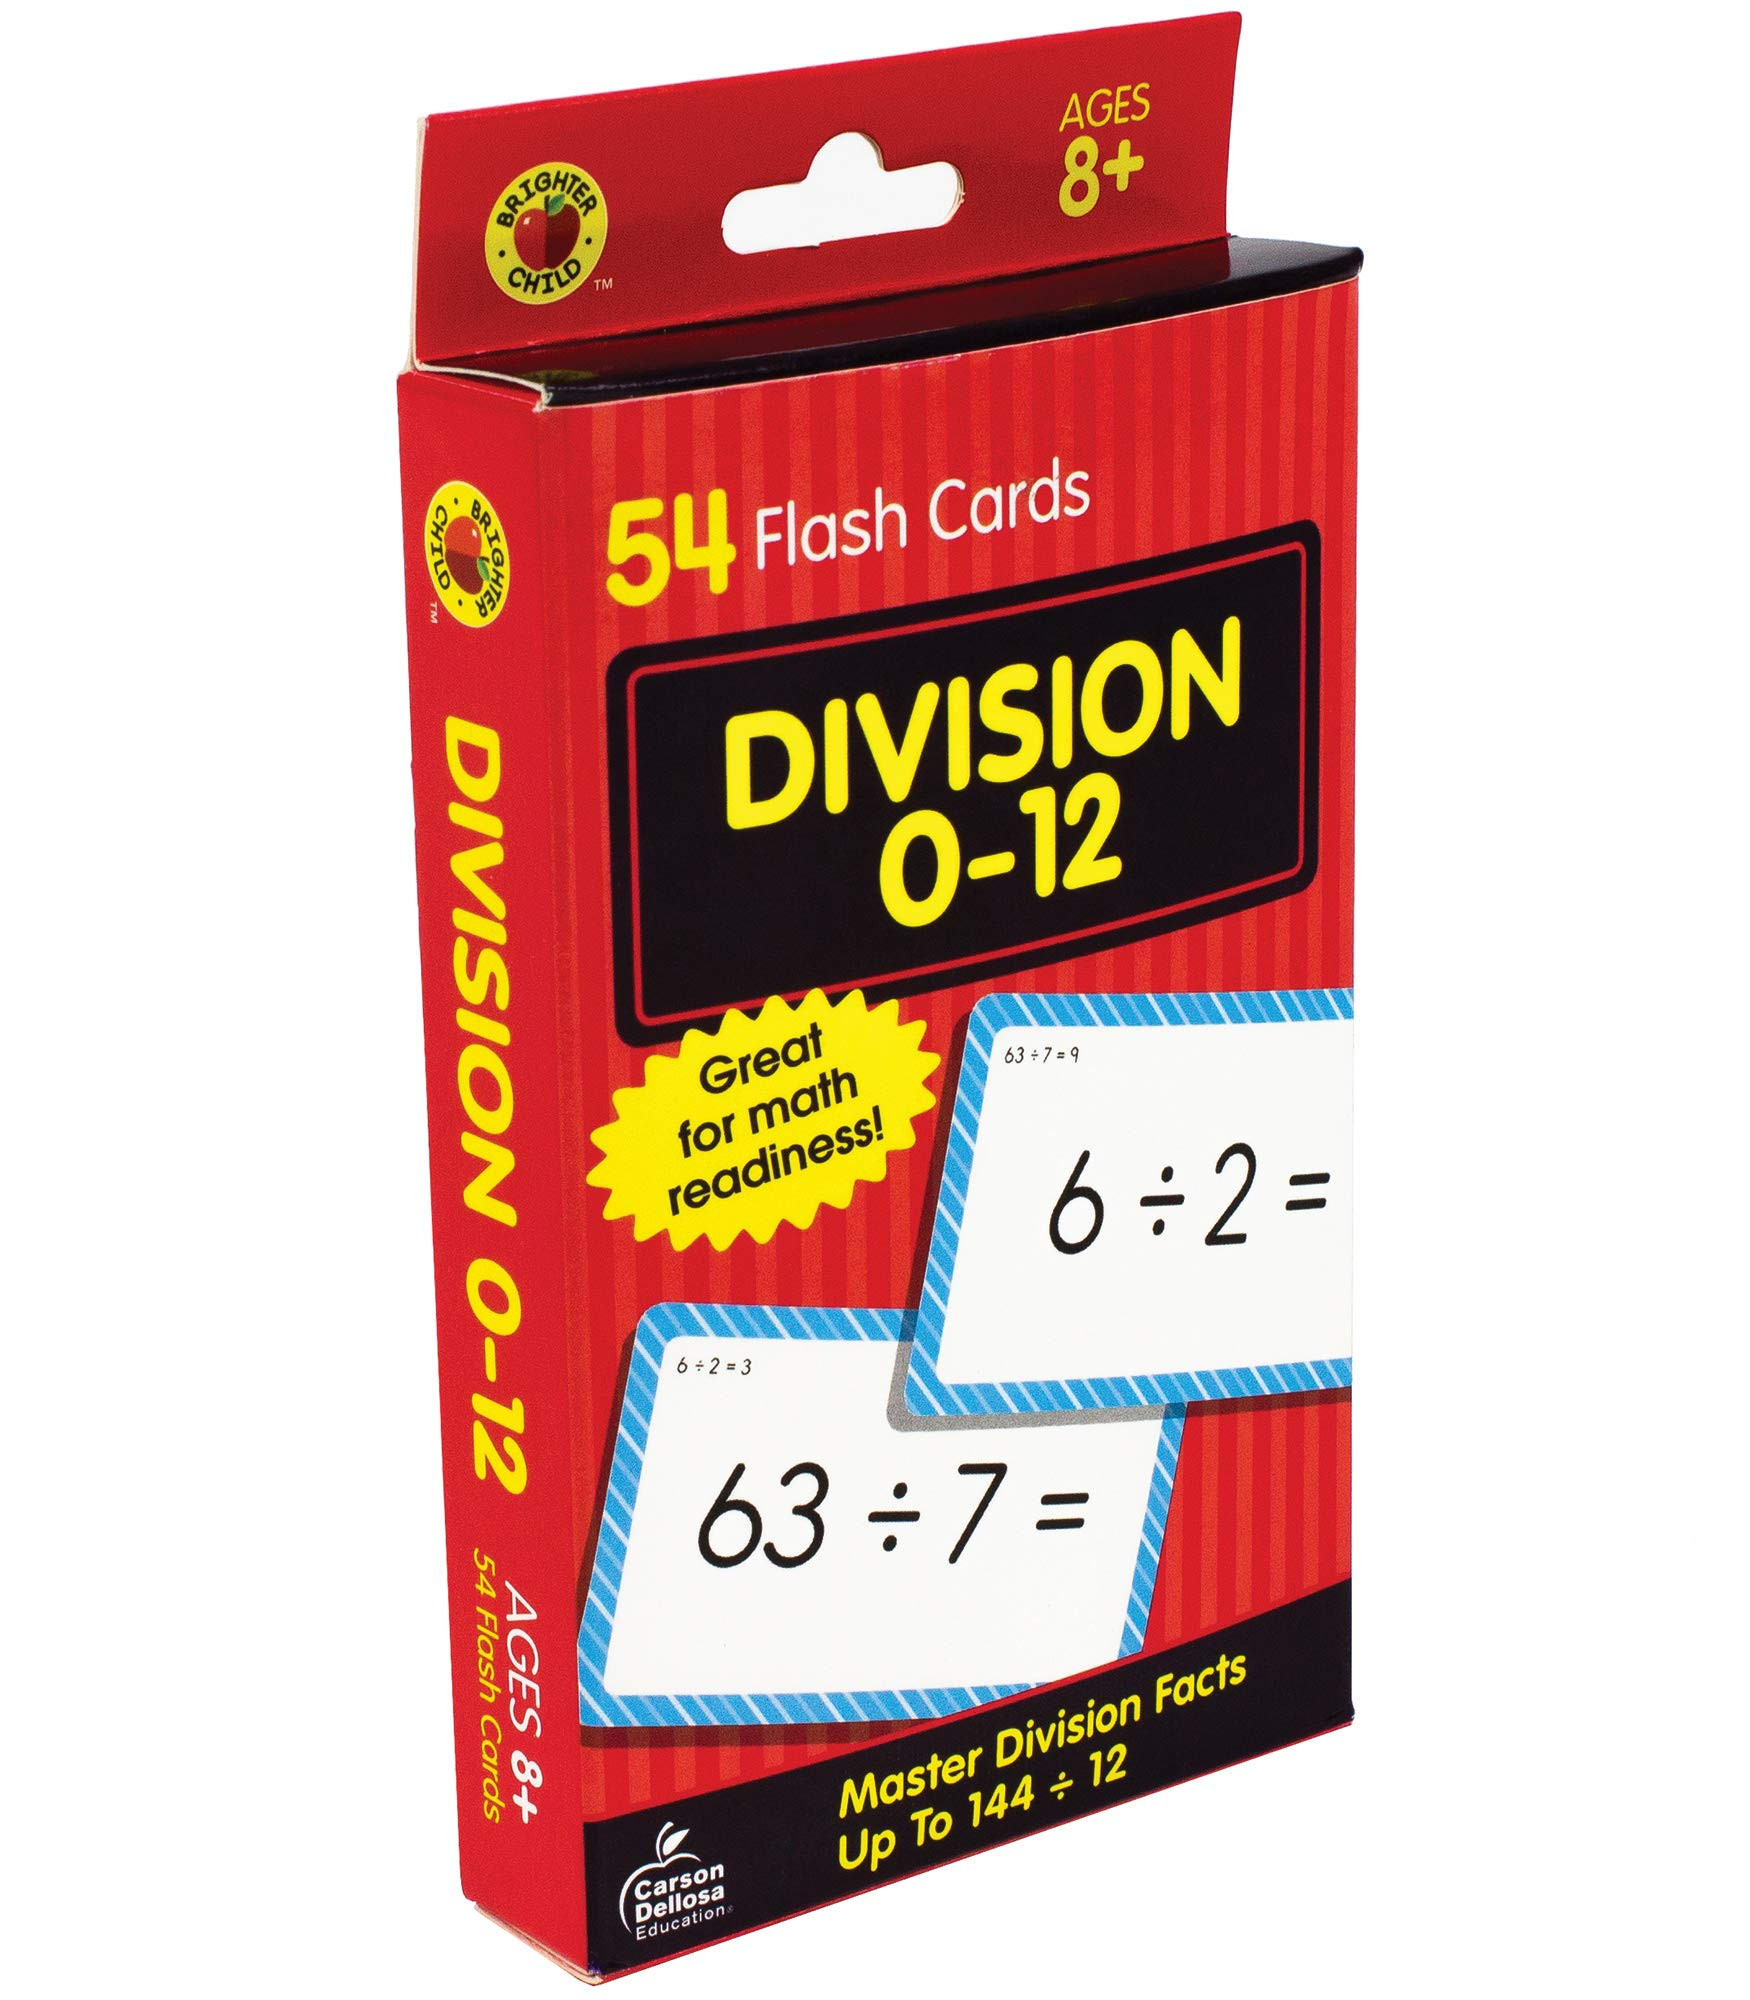 Division Facts Worksheets For Grade 2